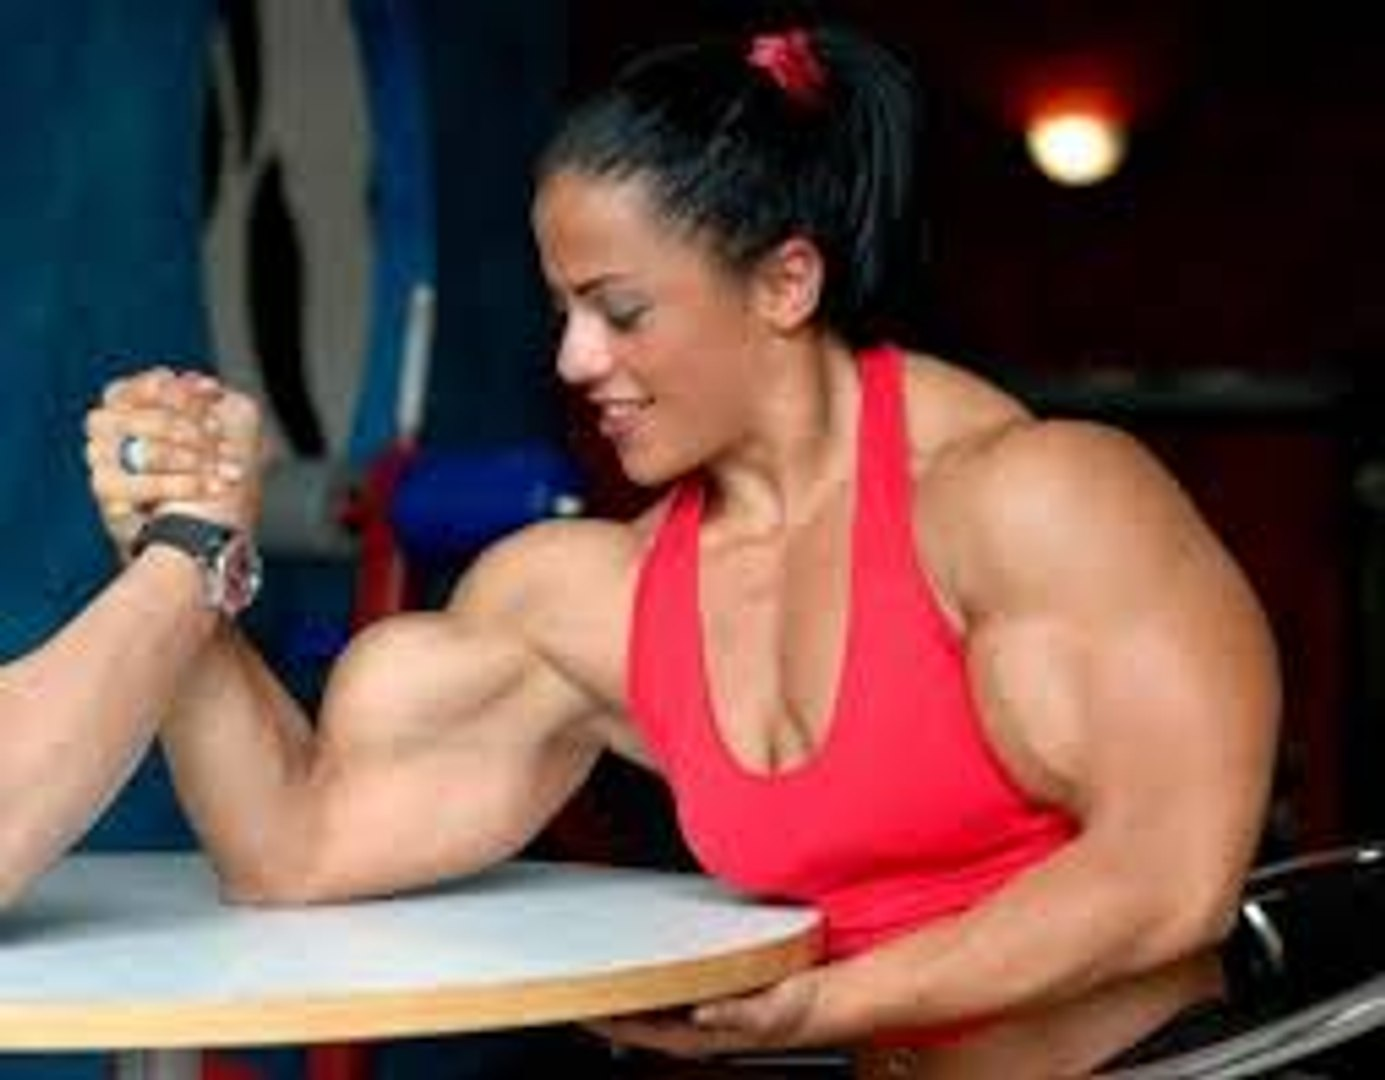 Armwrestling. Girl confronts man in manual sport